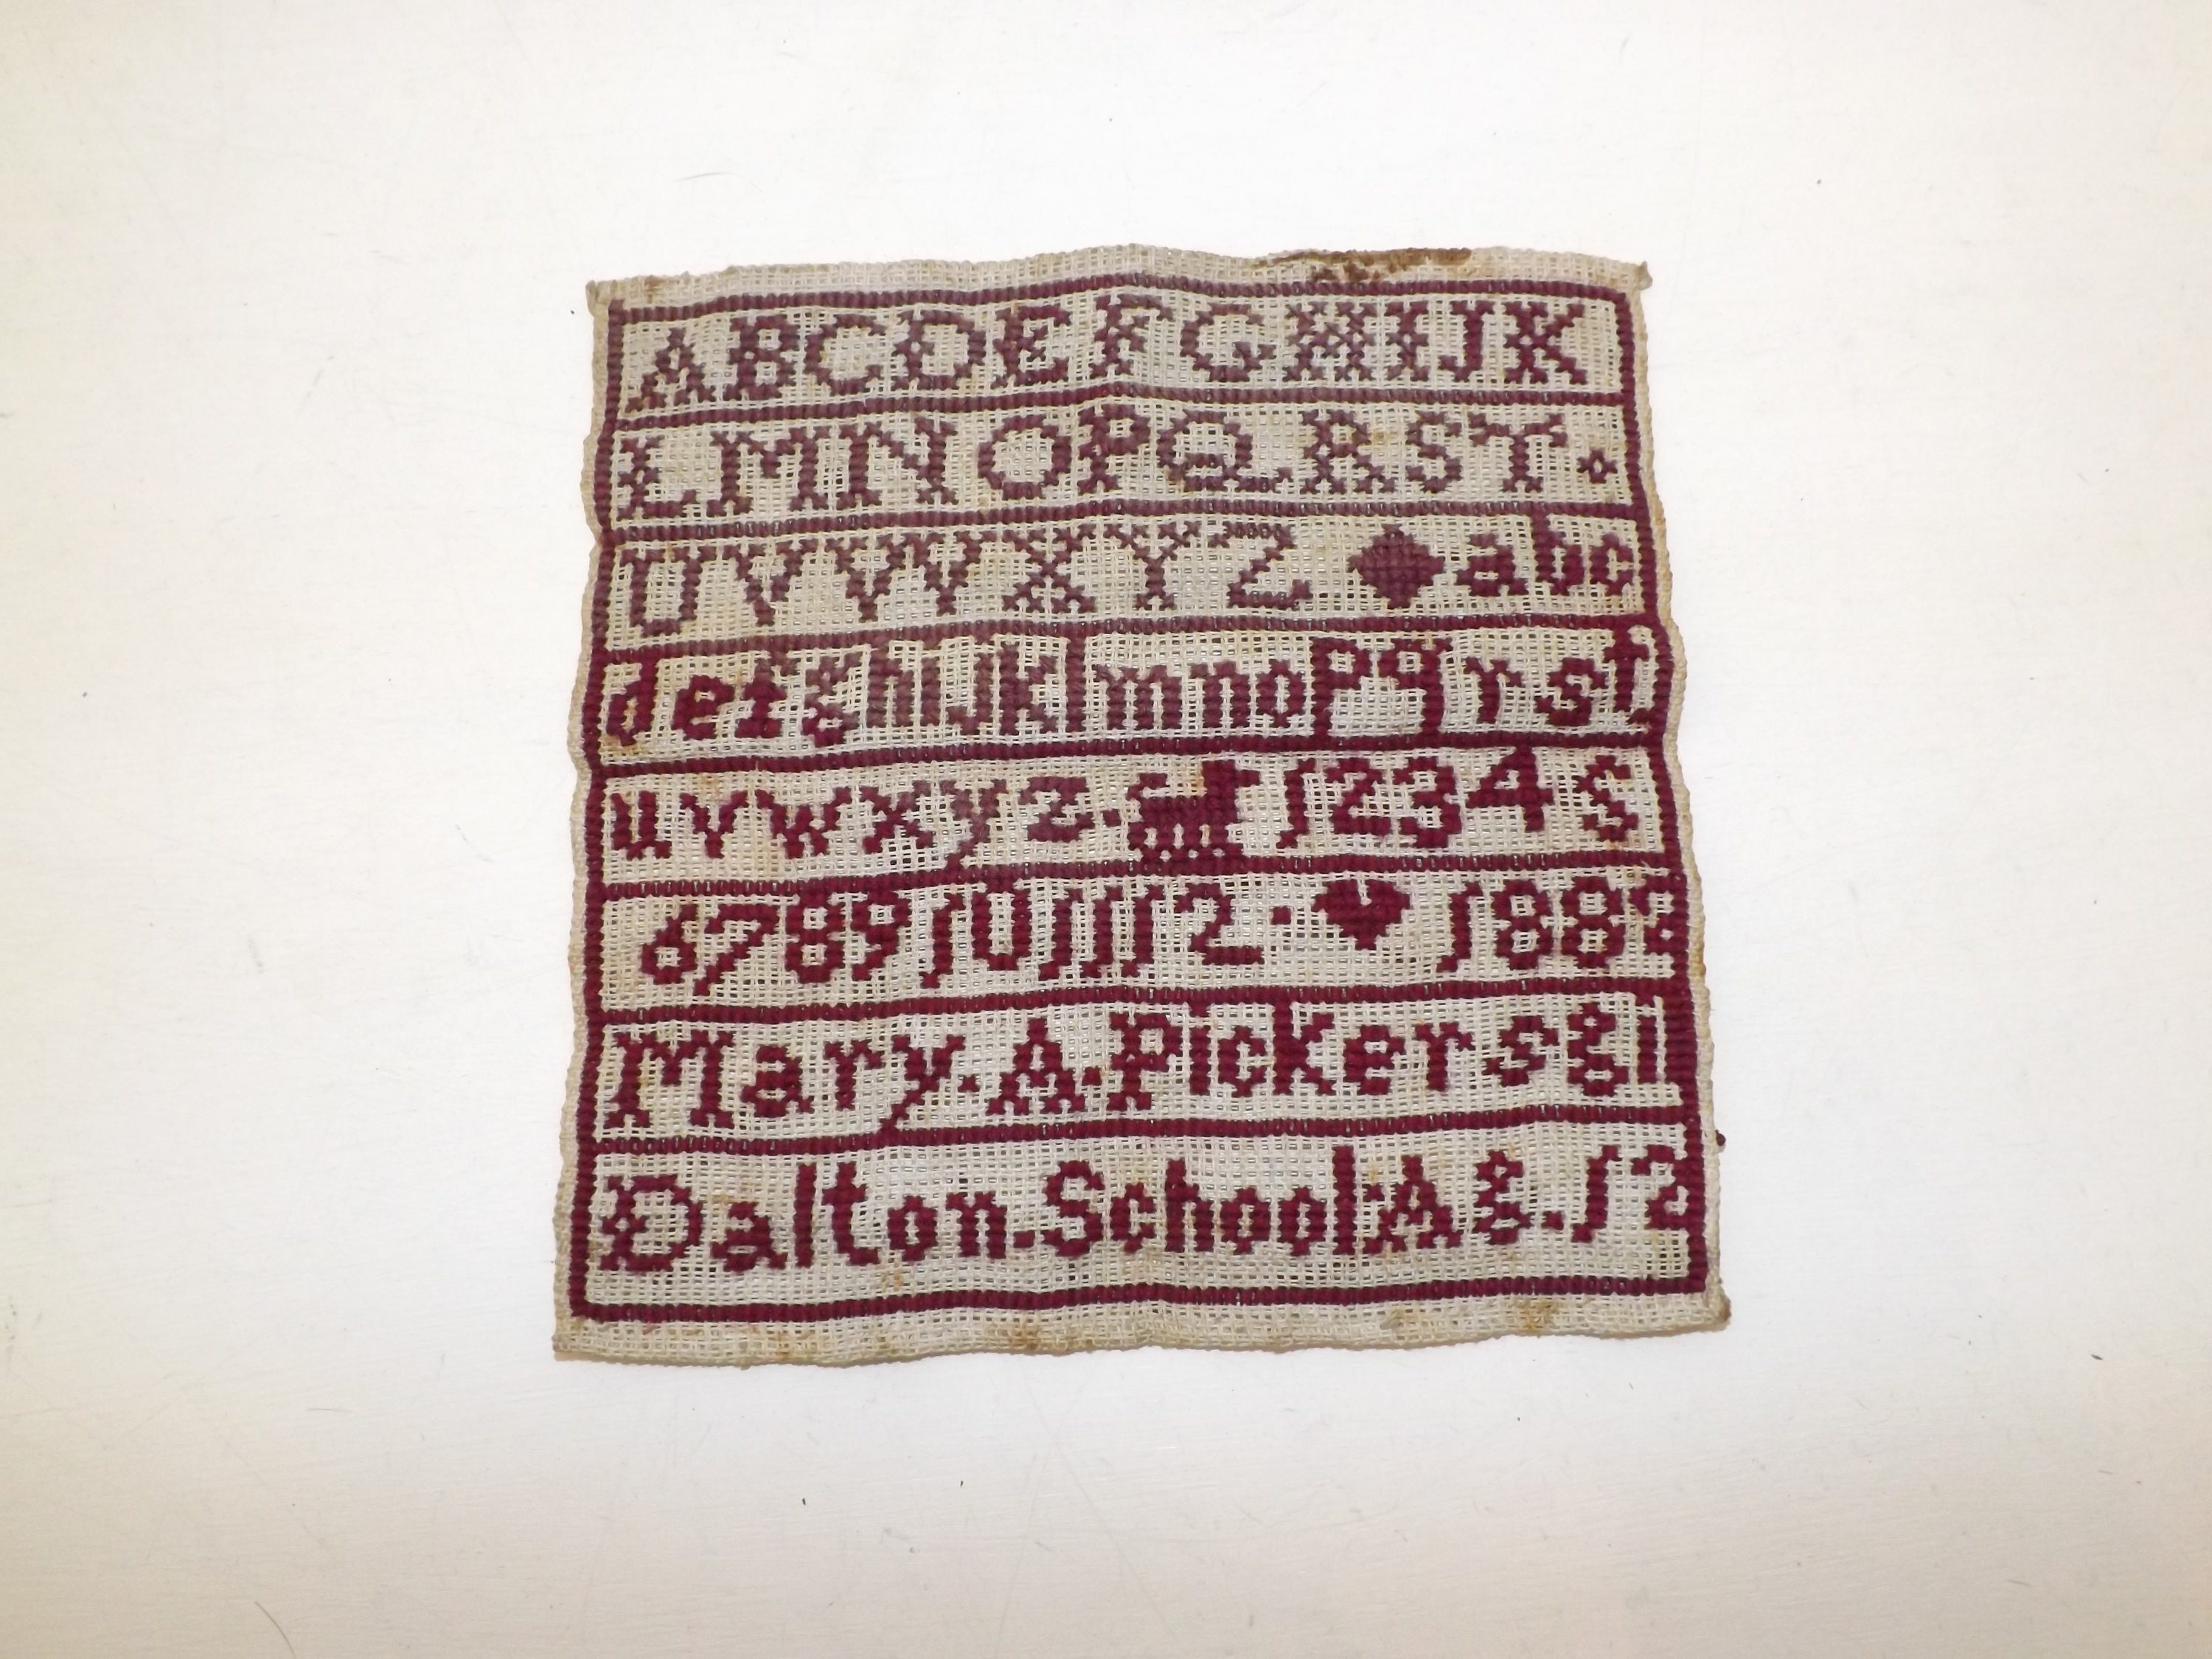 Antique Victorian small sampler woodwork cross stitch alphabet tapestry dated 1882